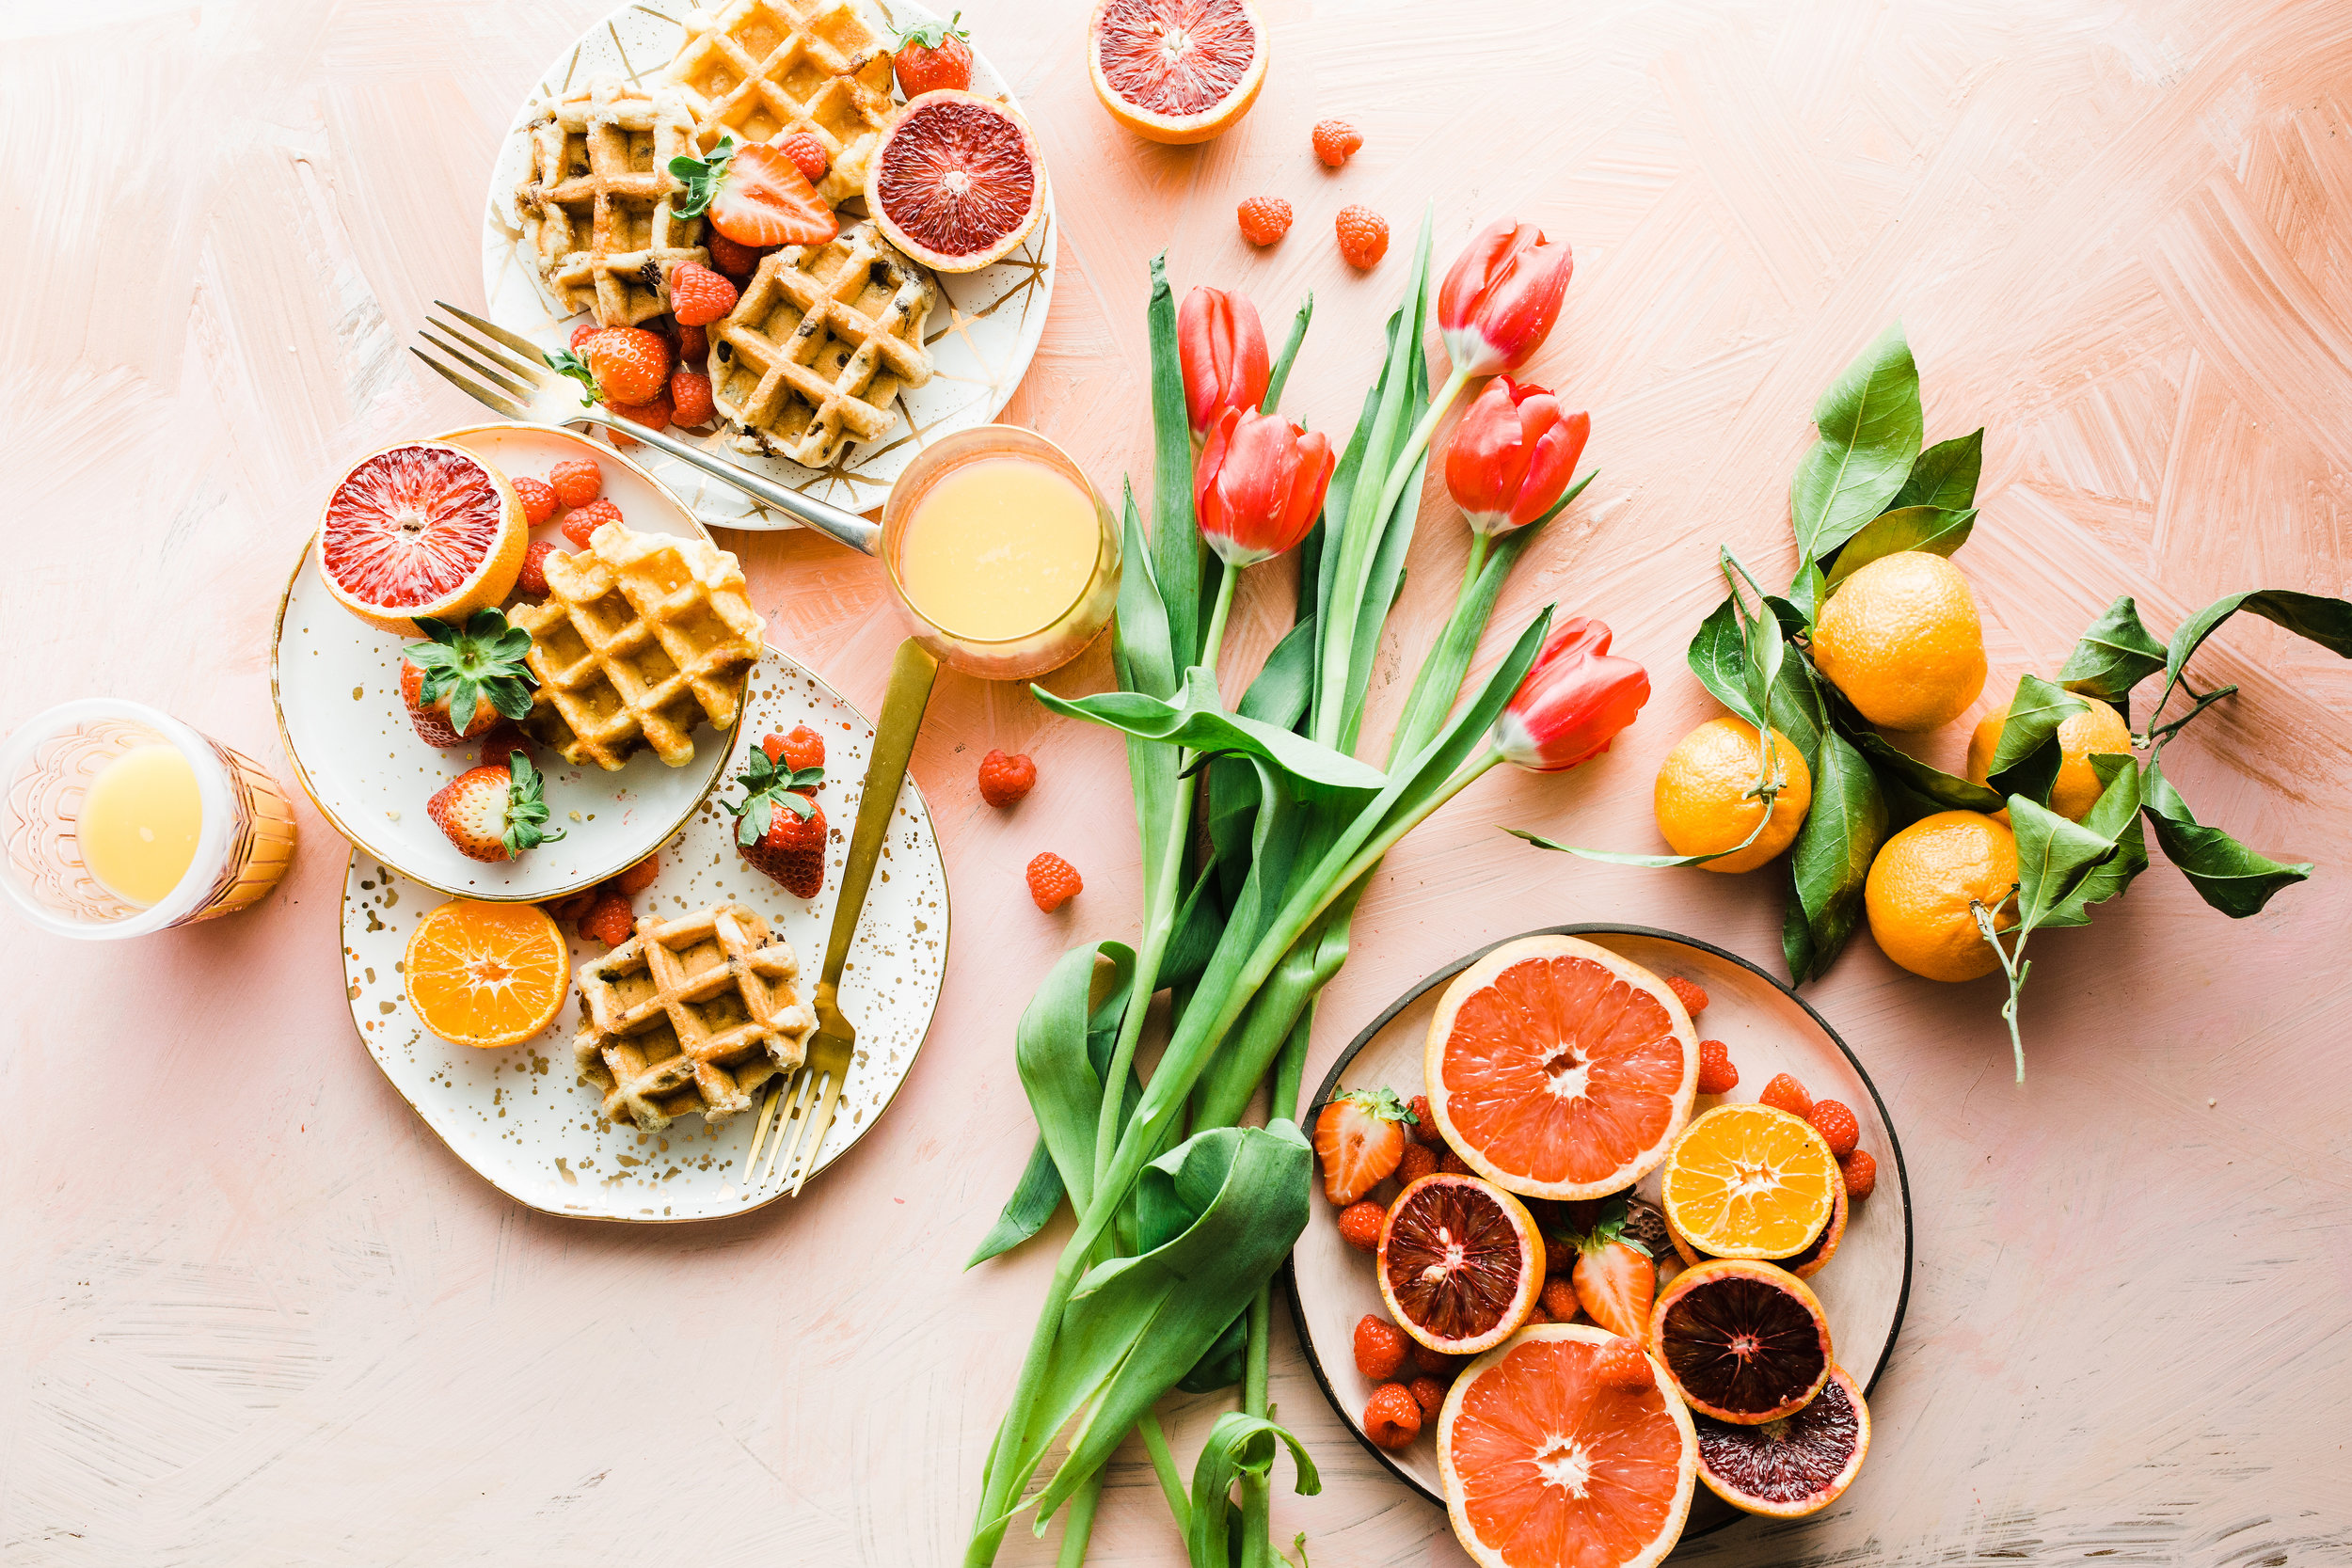 7 Simple Tricks to Take Instantly Better Food Photos